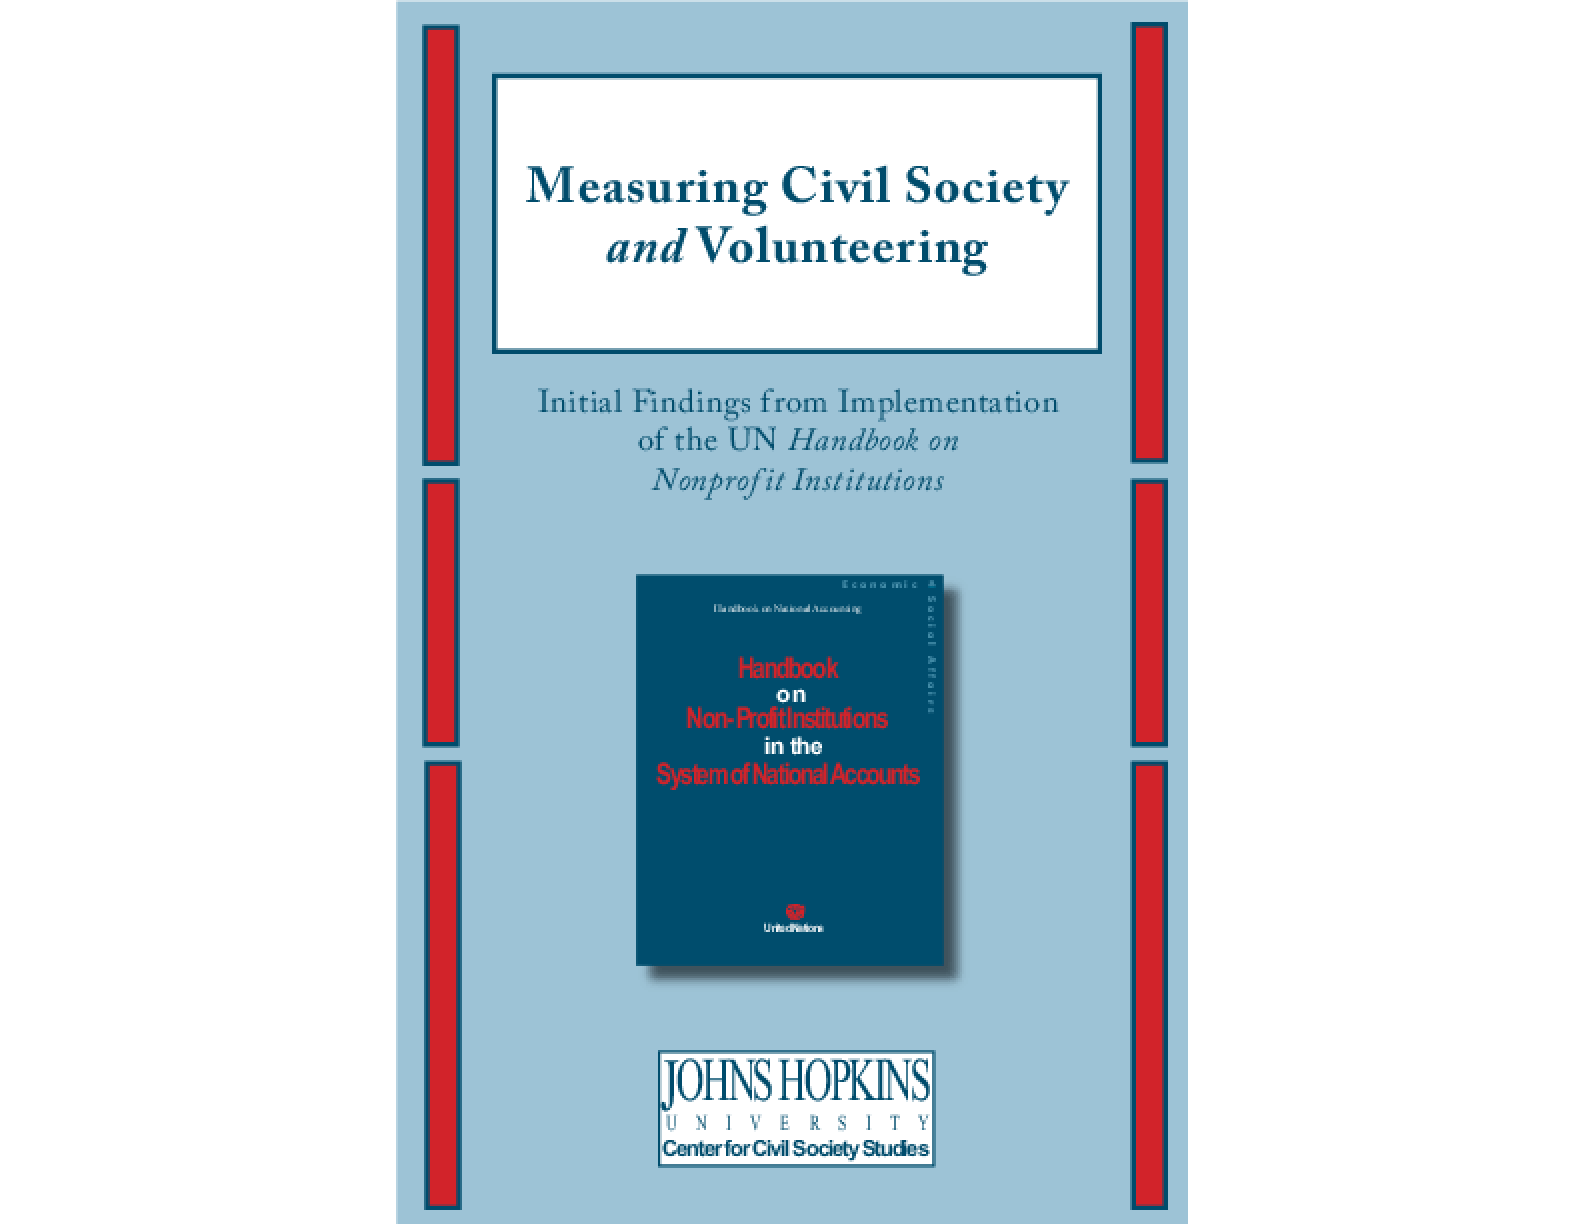 Measuring Civil Society and Volunteering